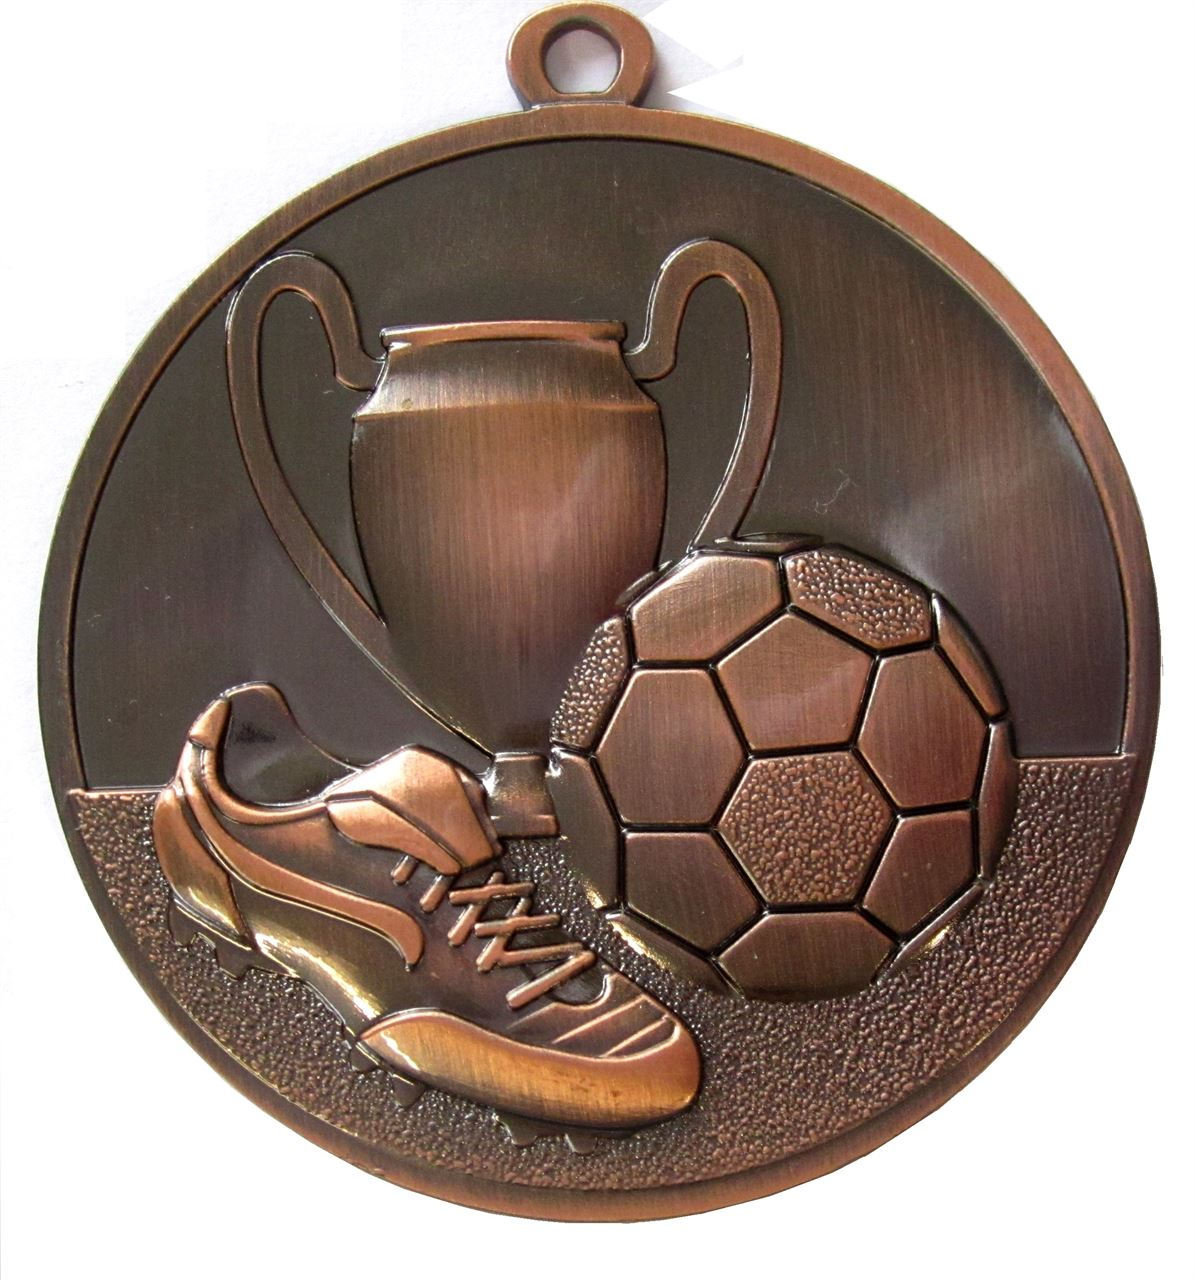 Copper Super Economy Football Medal (size: 50mm) - ME47